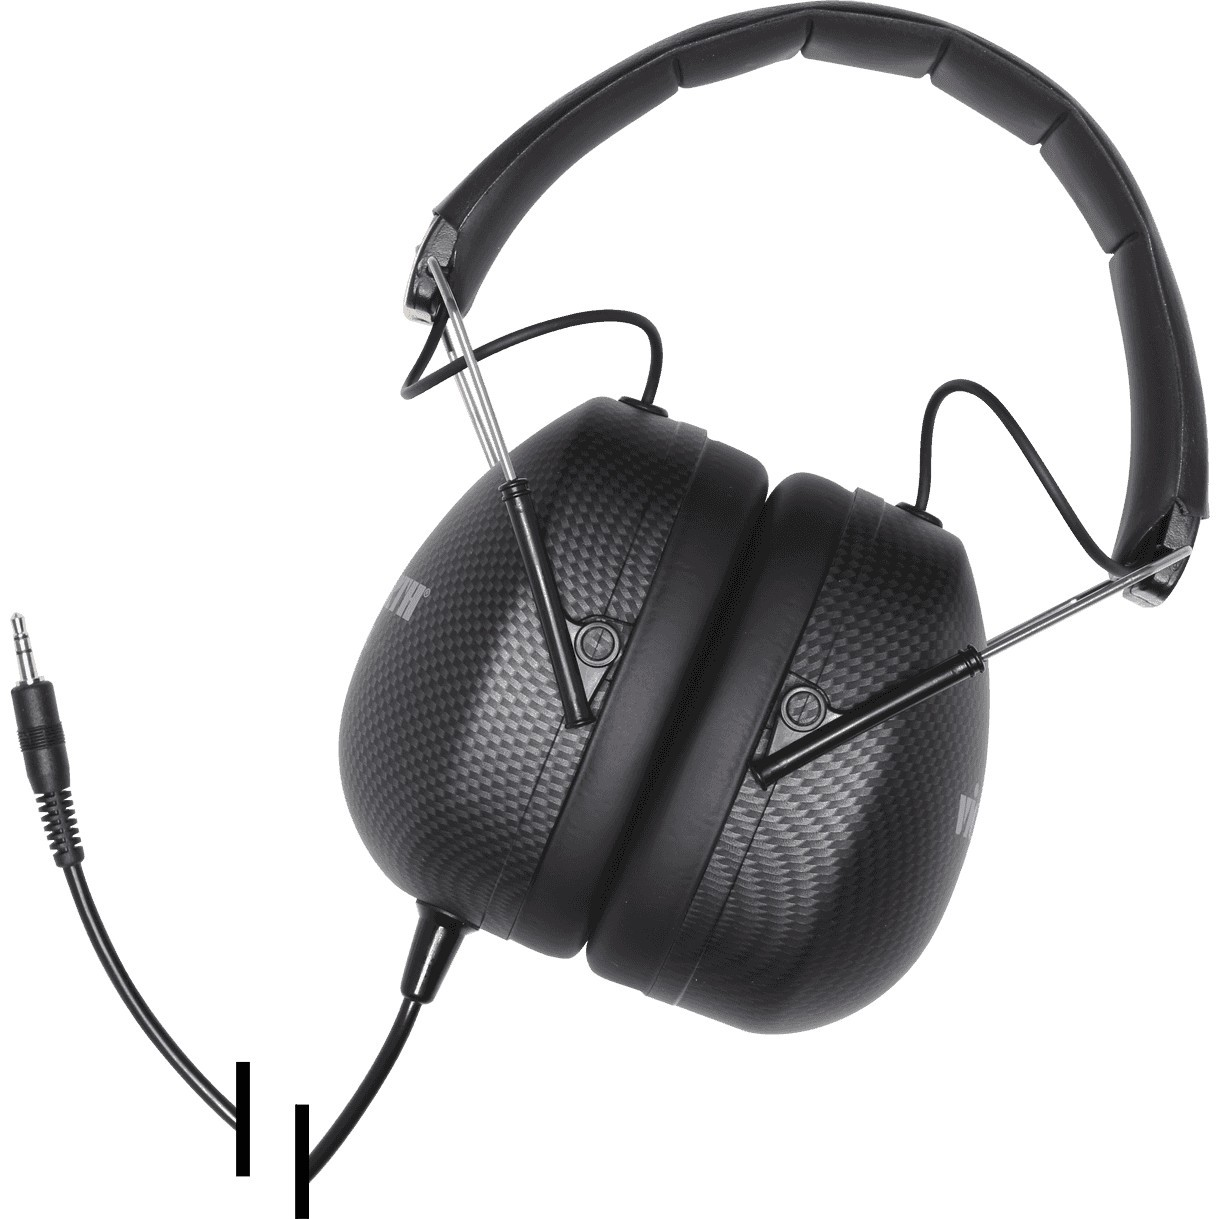 VIC FIRTH Stereo Isolation Headphone V2